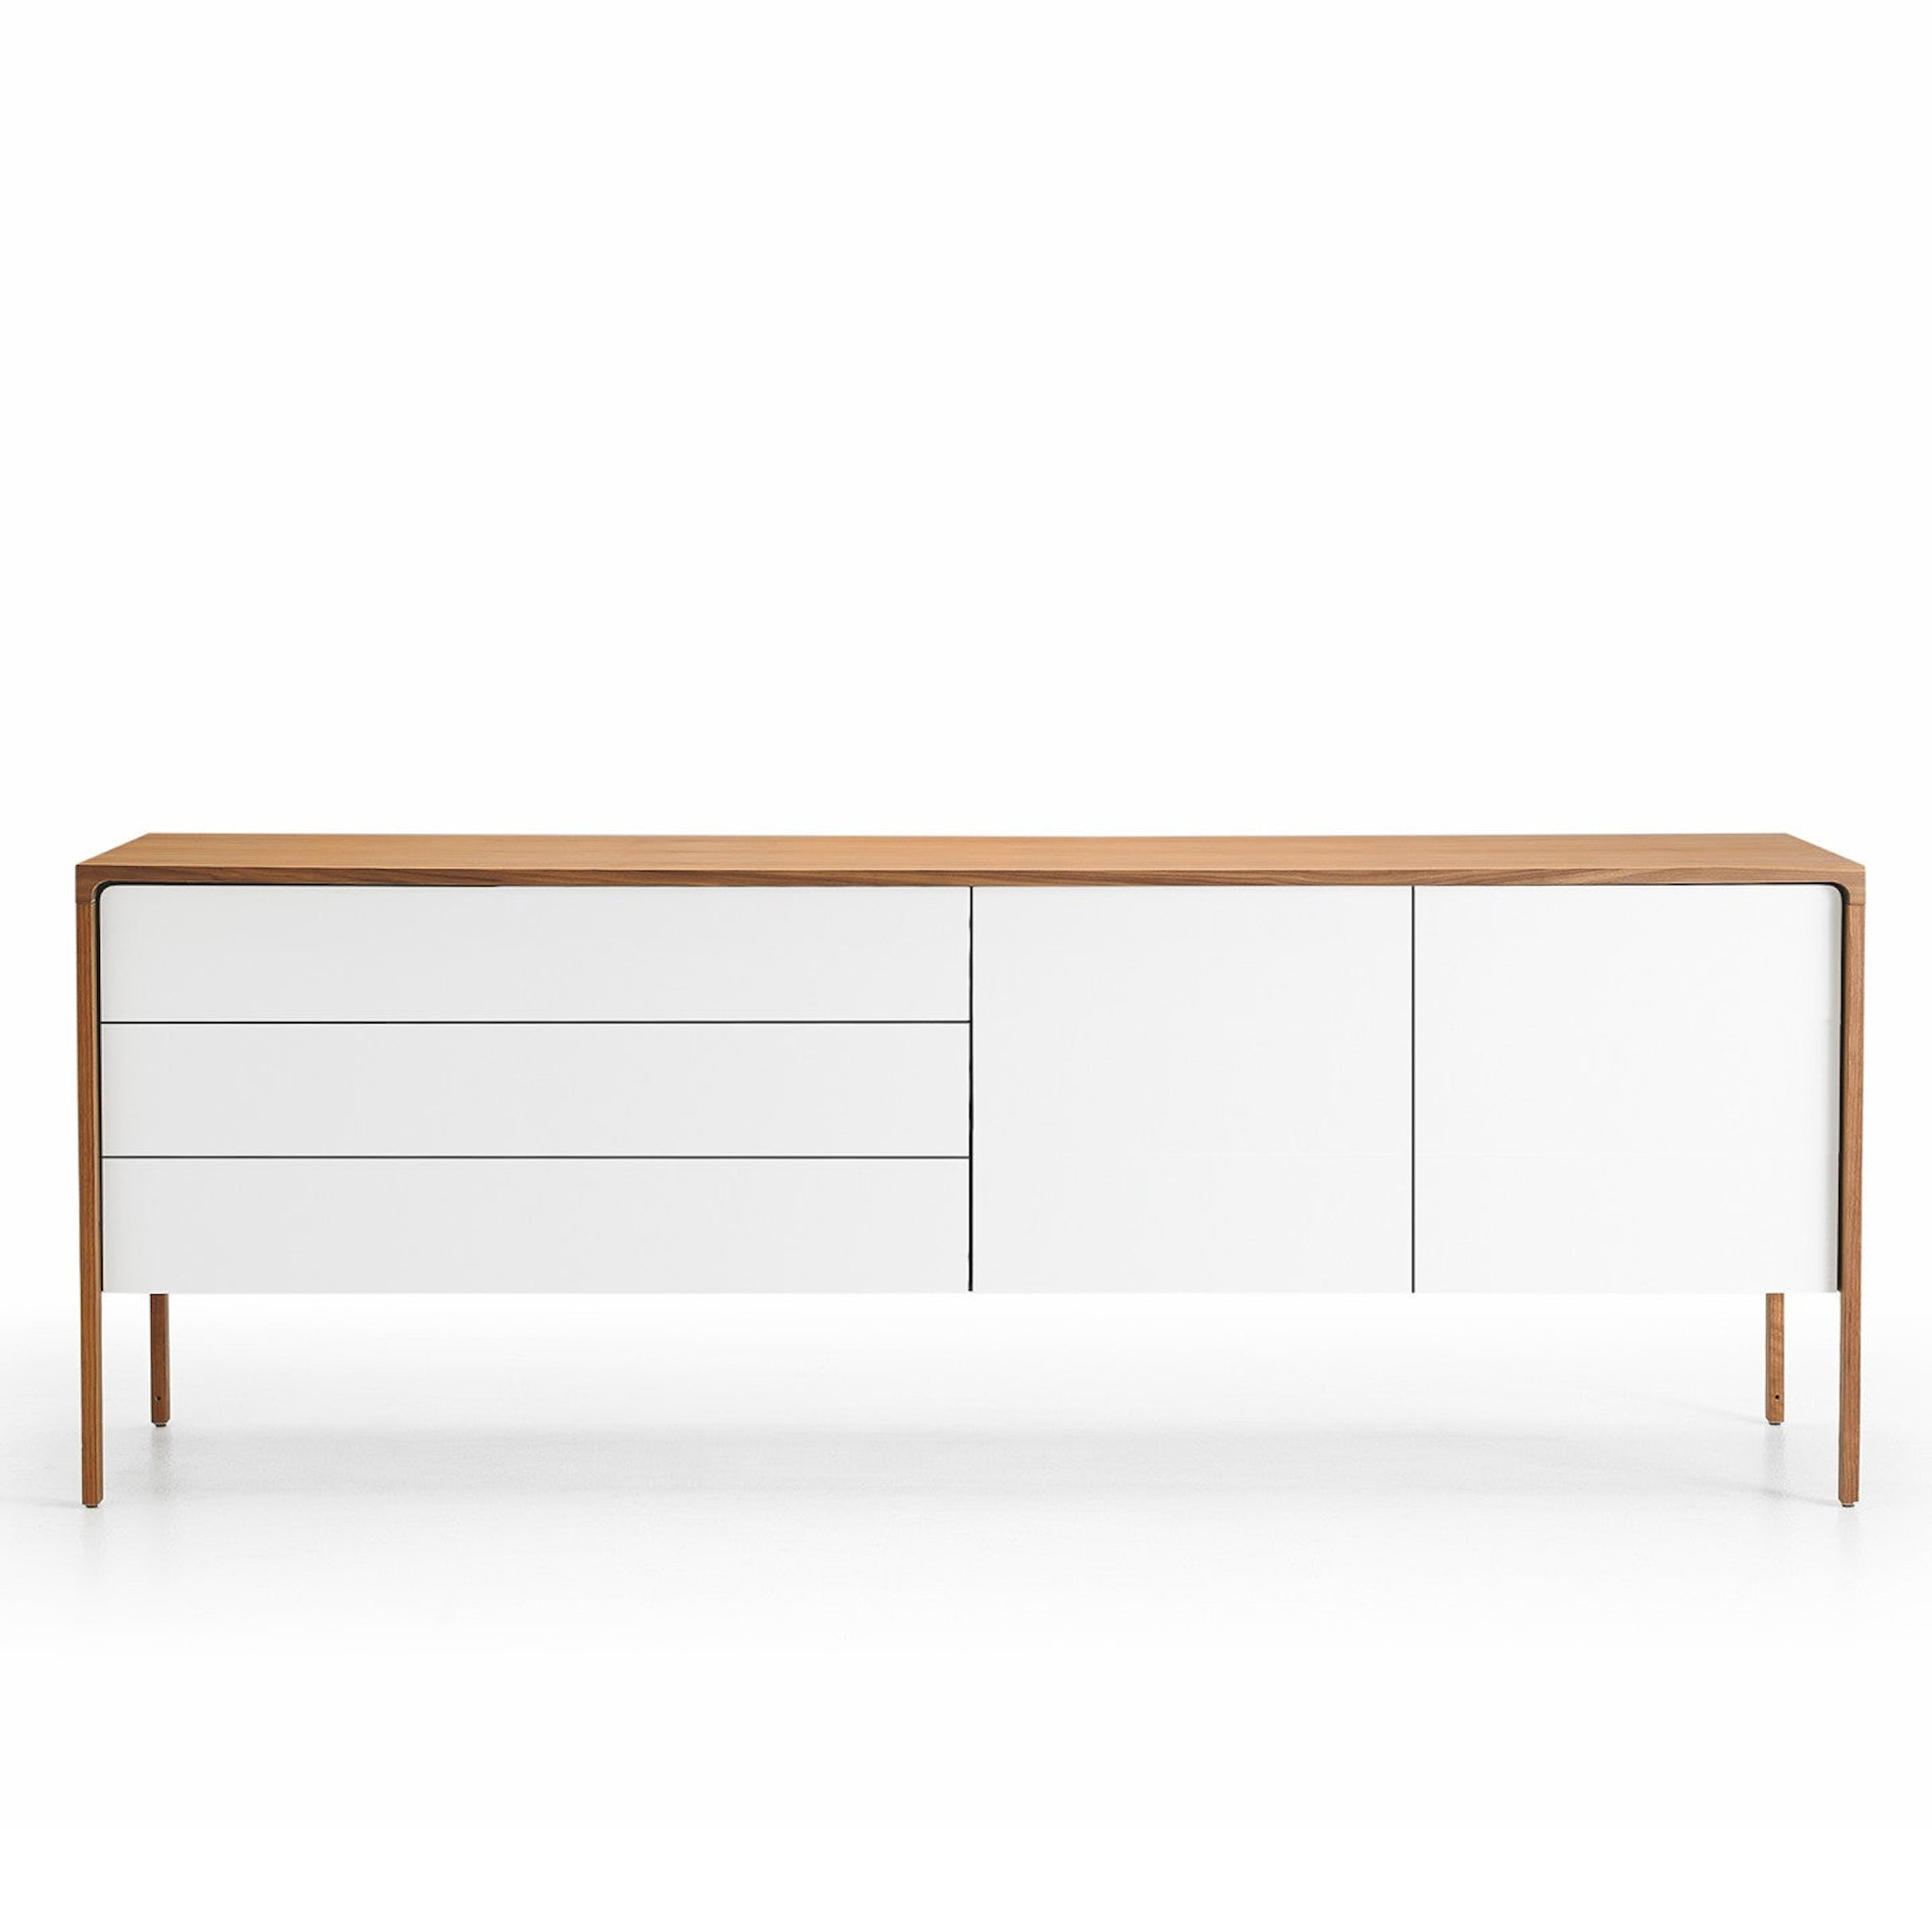 Tactile Sideboard by Terence Woodgate